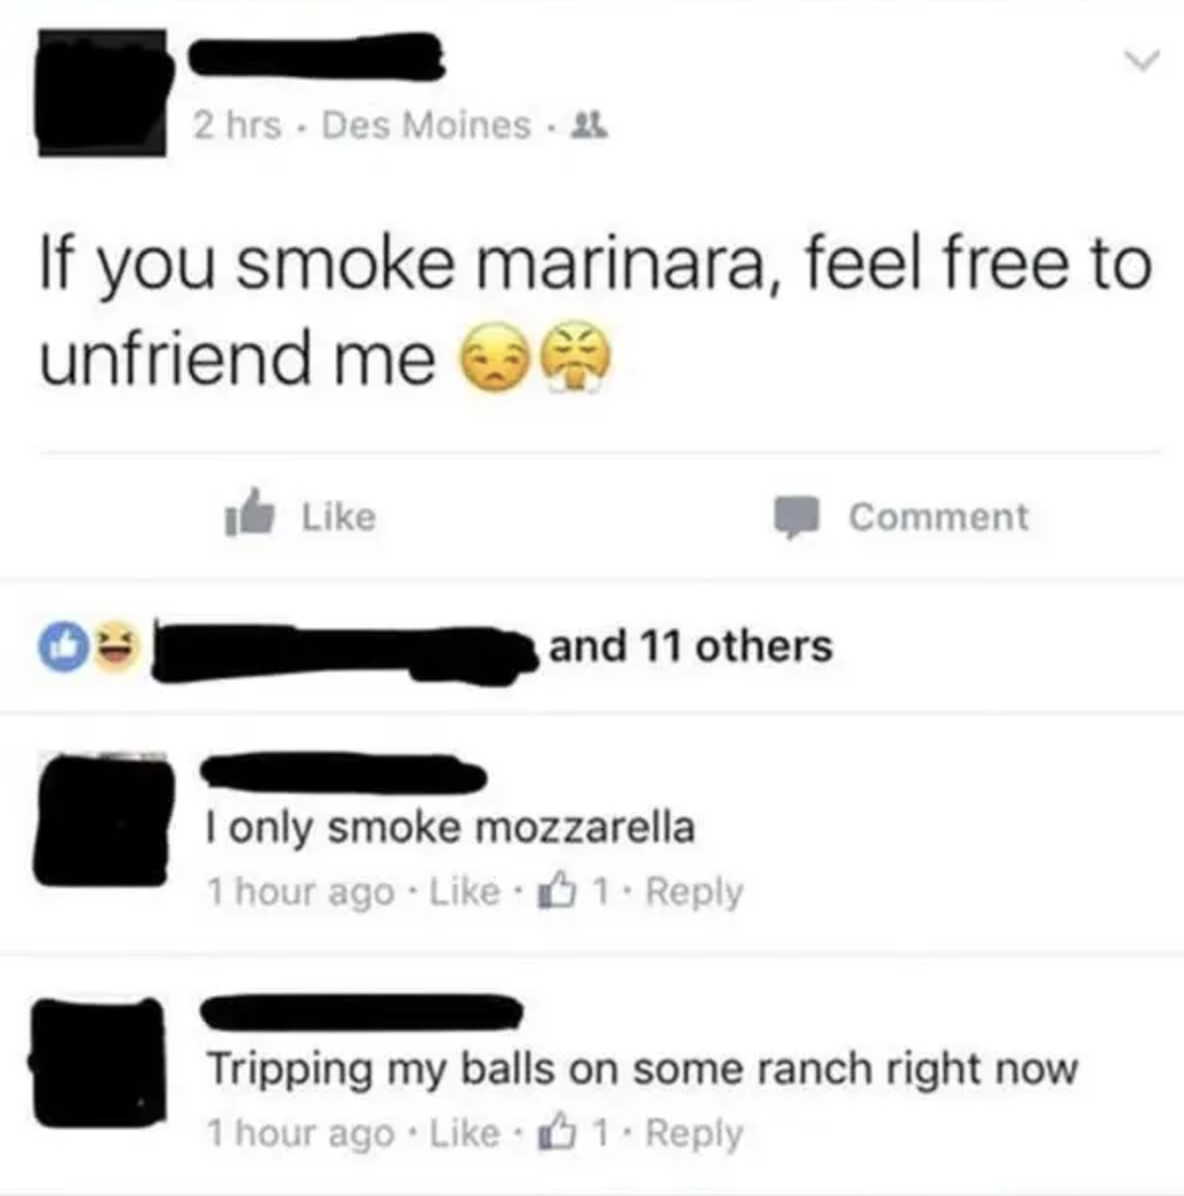 Person misspelling marijuana as marinara